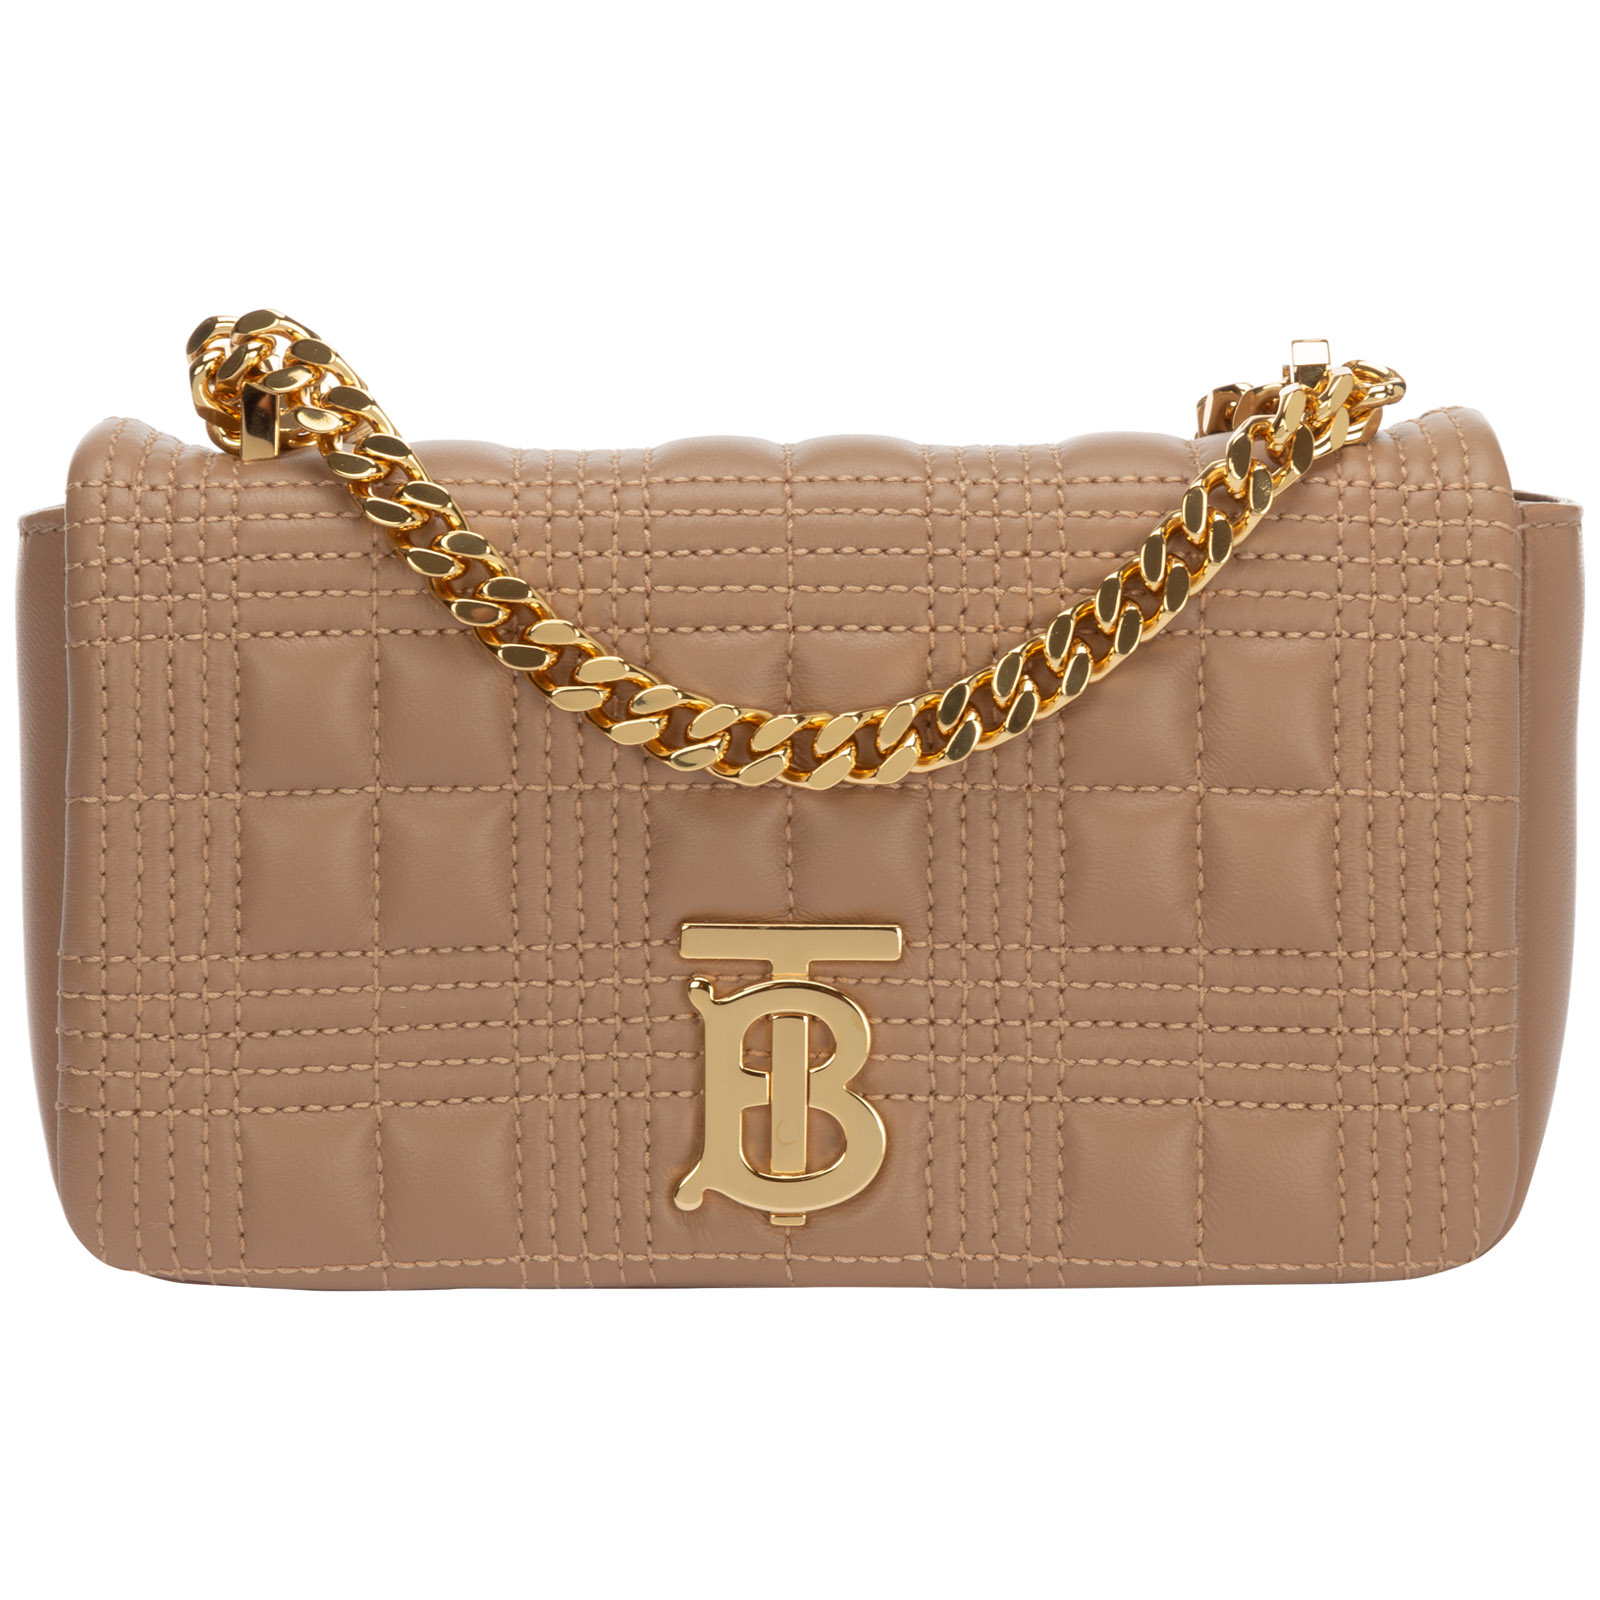 BURBERRY WOMEN'S LEATHER SHOULDER BAG LOLA